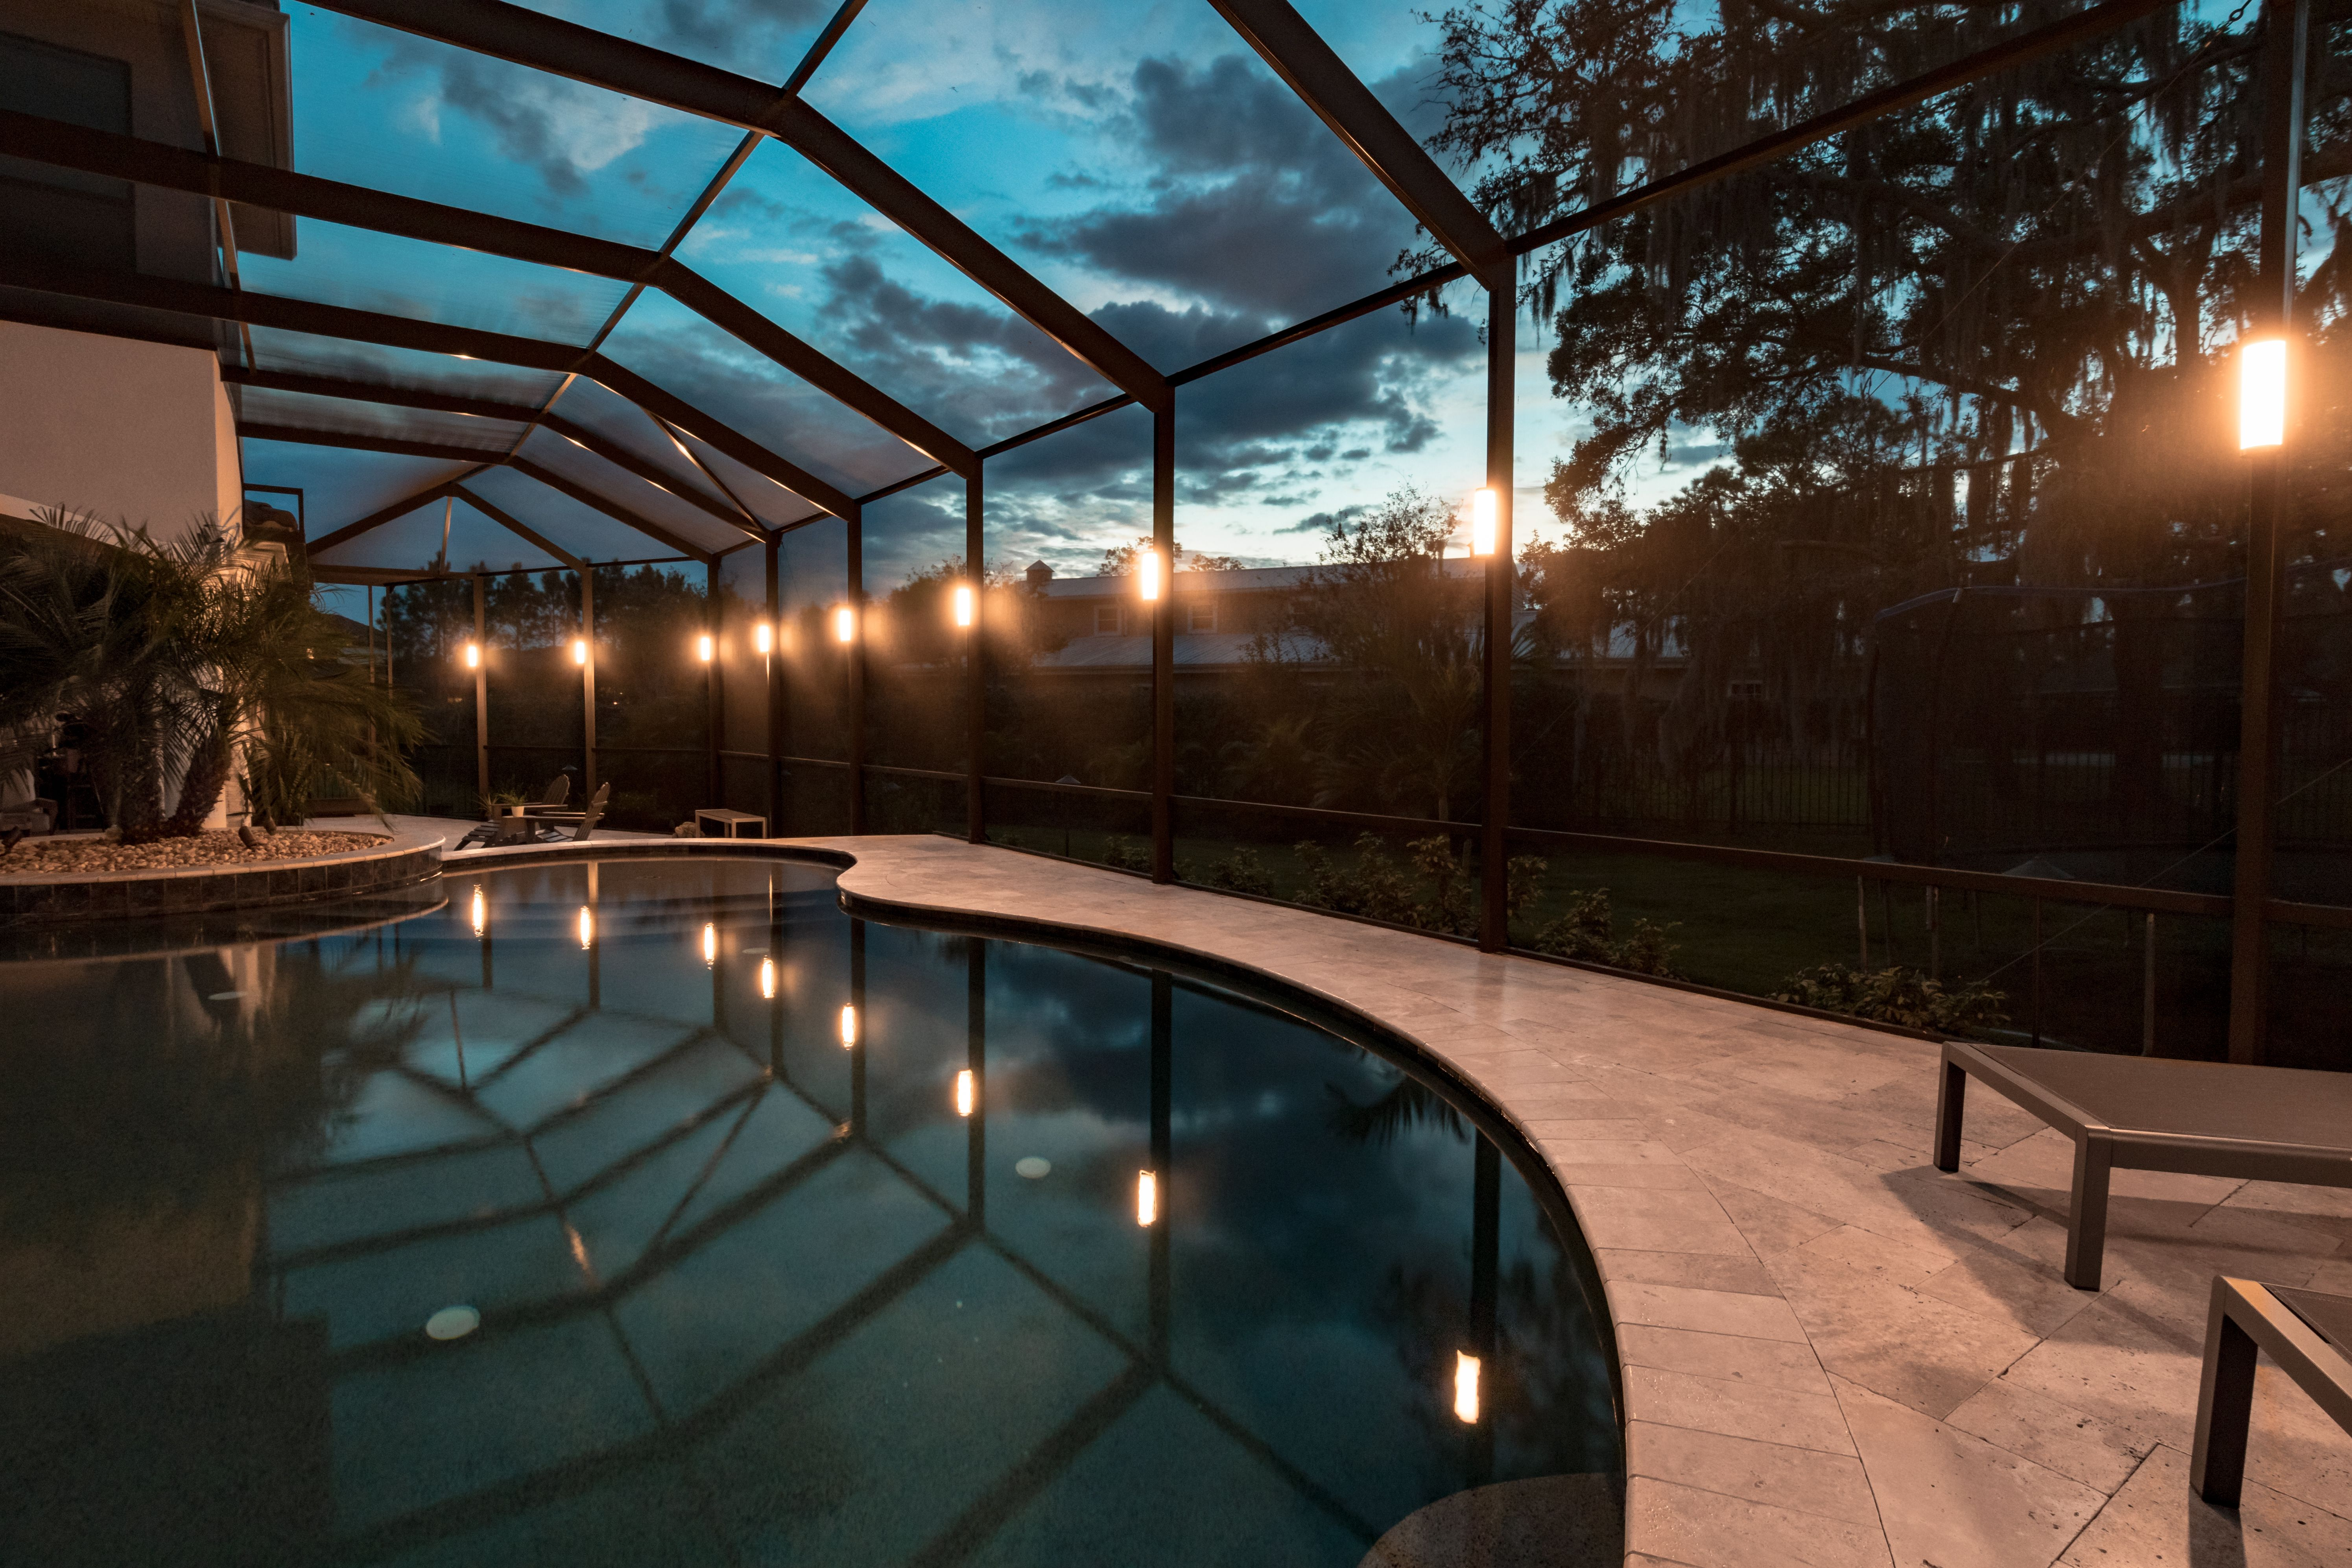 Elegant Pool Cage Lighting Installed Endless Color Combinations